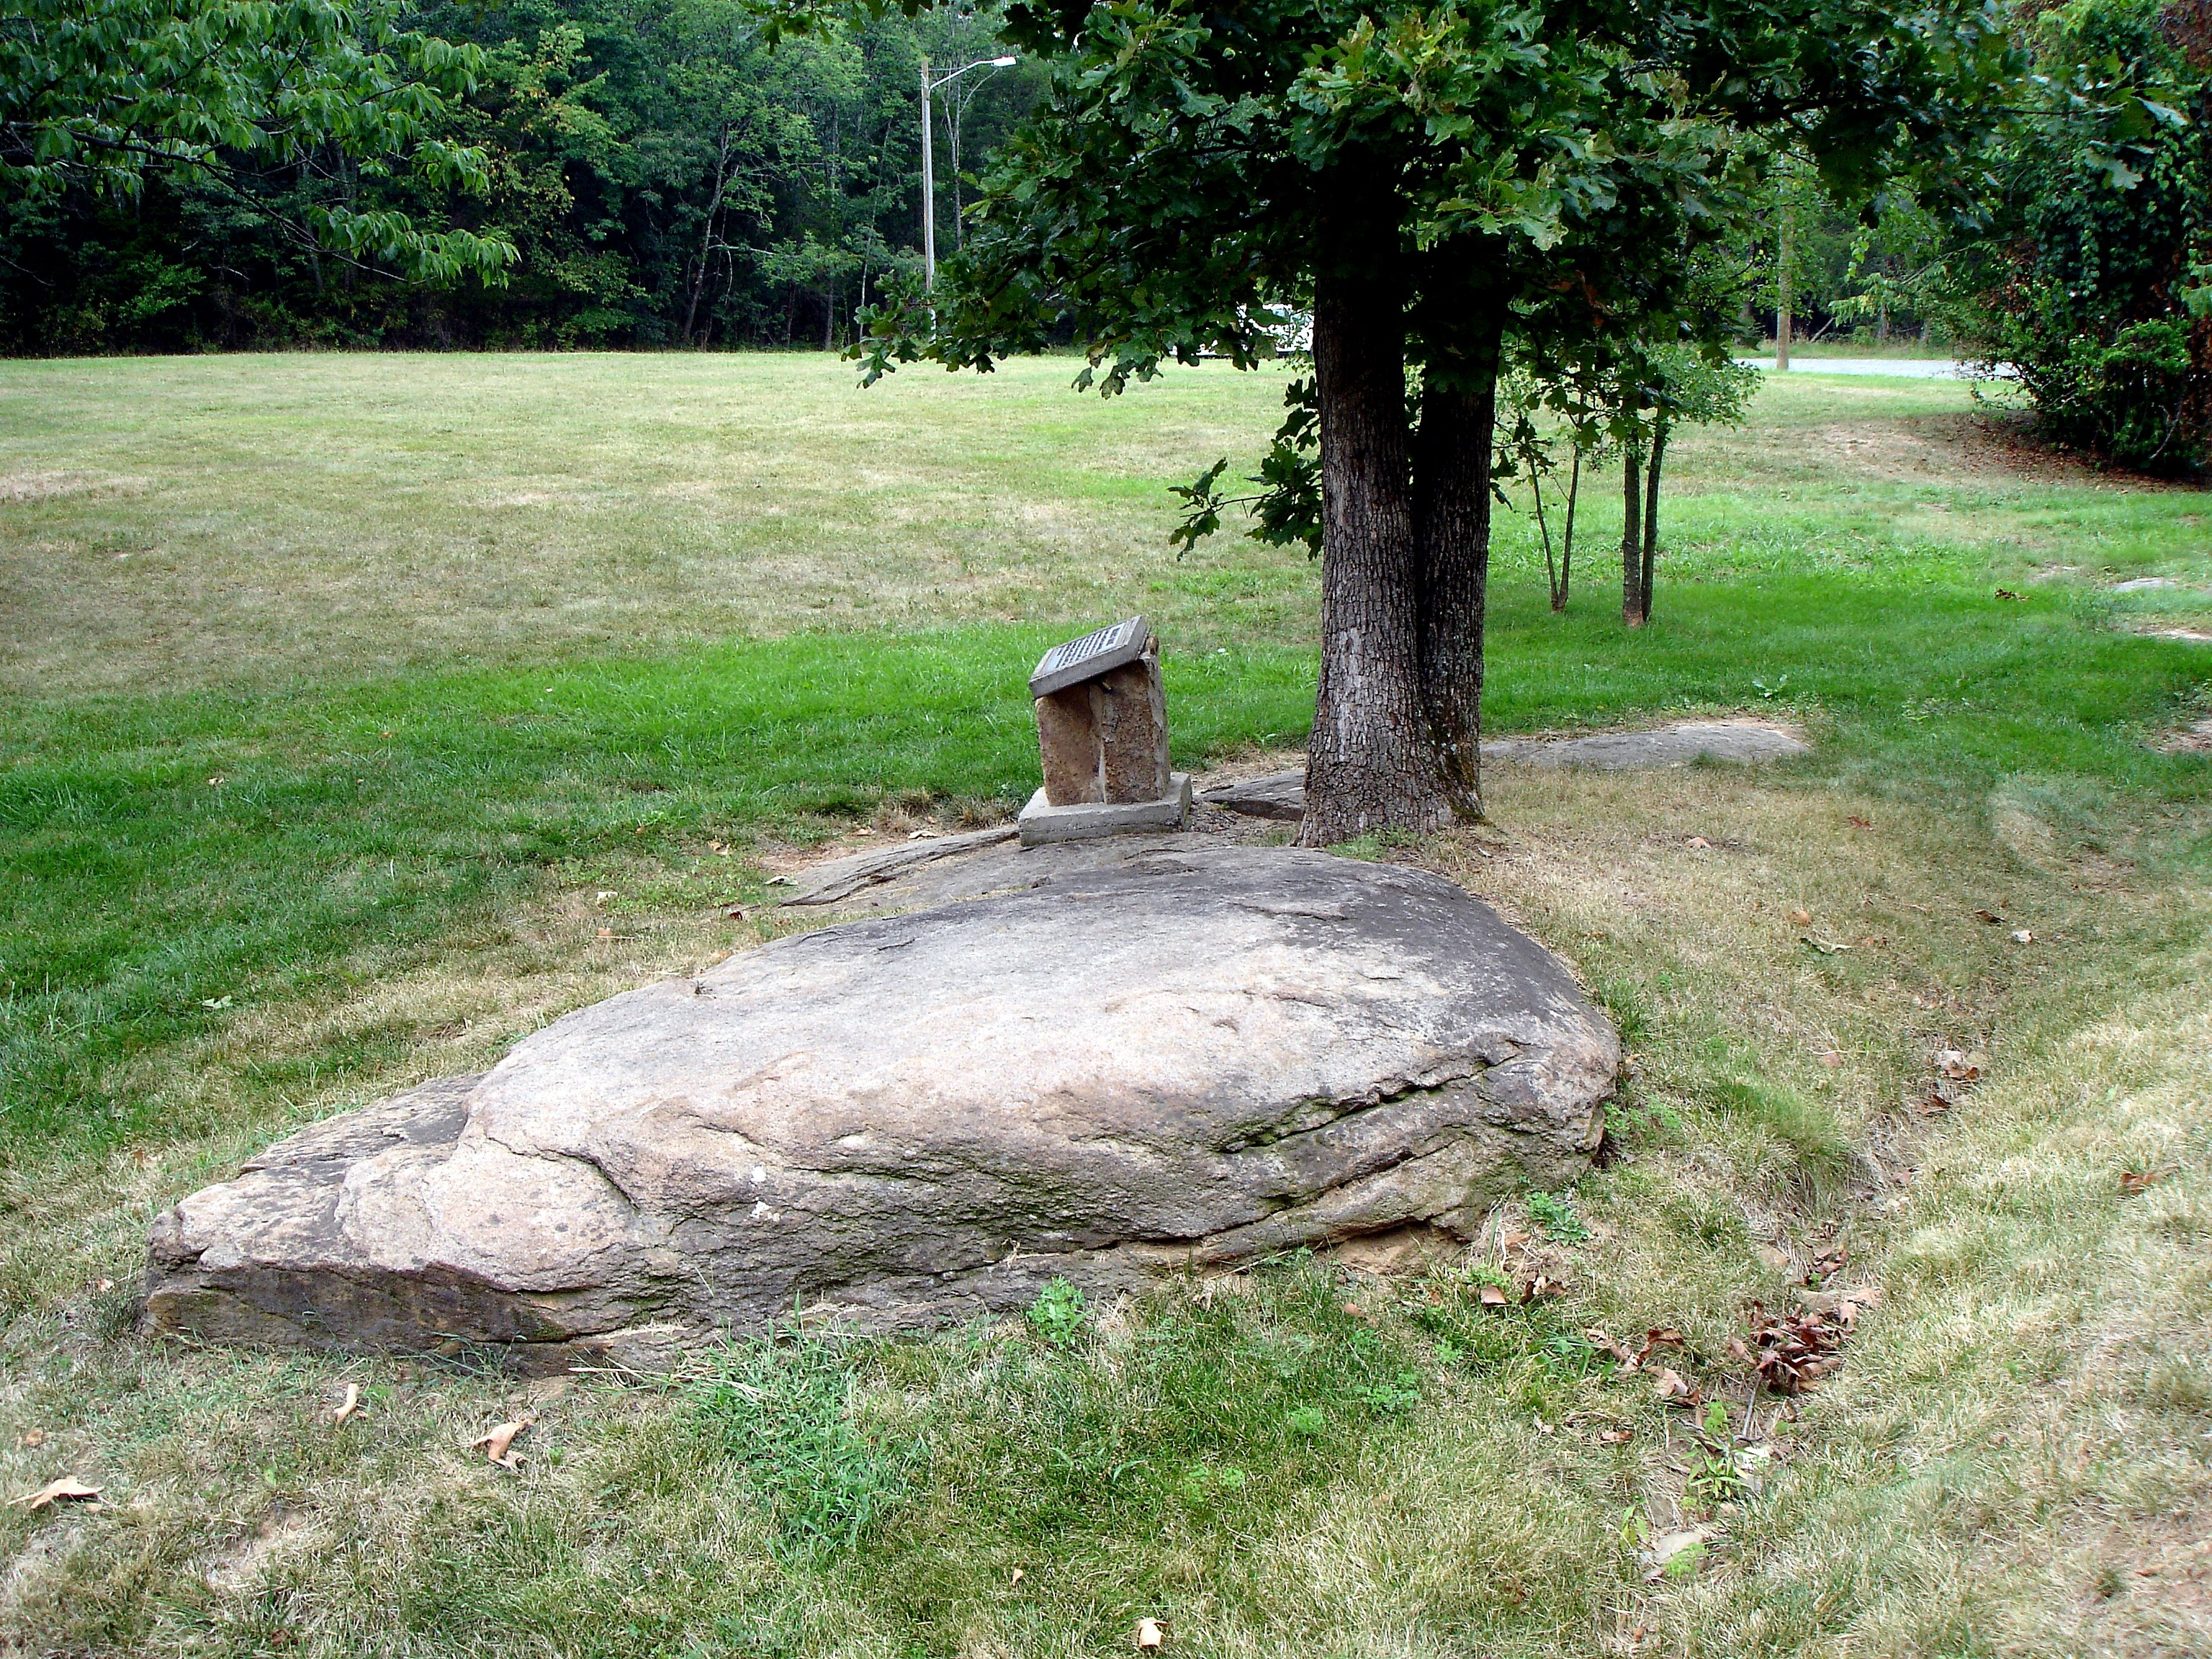 Mosby's Rock, which Laura Ratcliffe and Col. John S. Mosby used for meetings and as a drop site to exchange information - located between two townhouses across from Mt. Pleasant Baptist Church's overflow parking lot